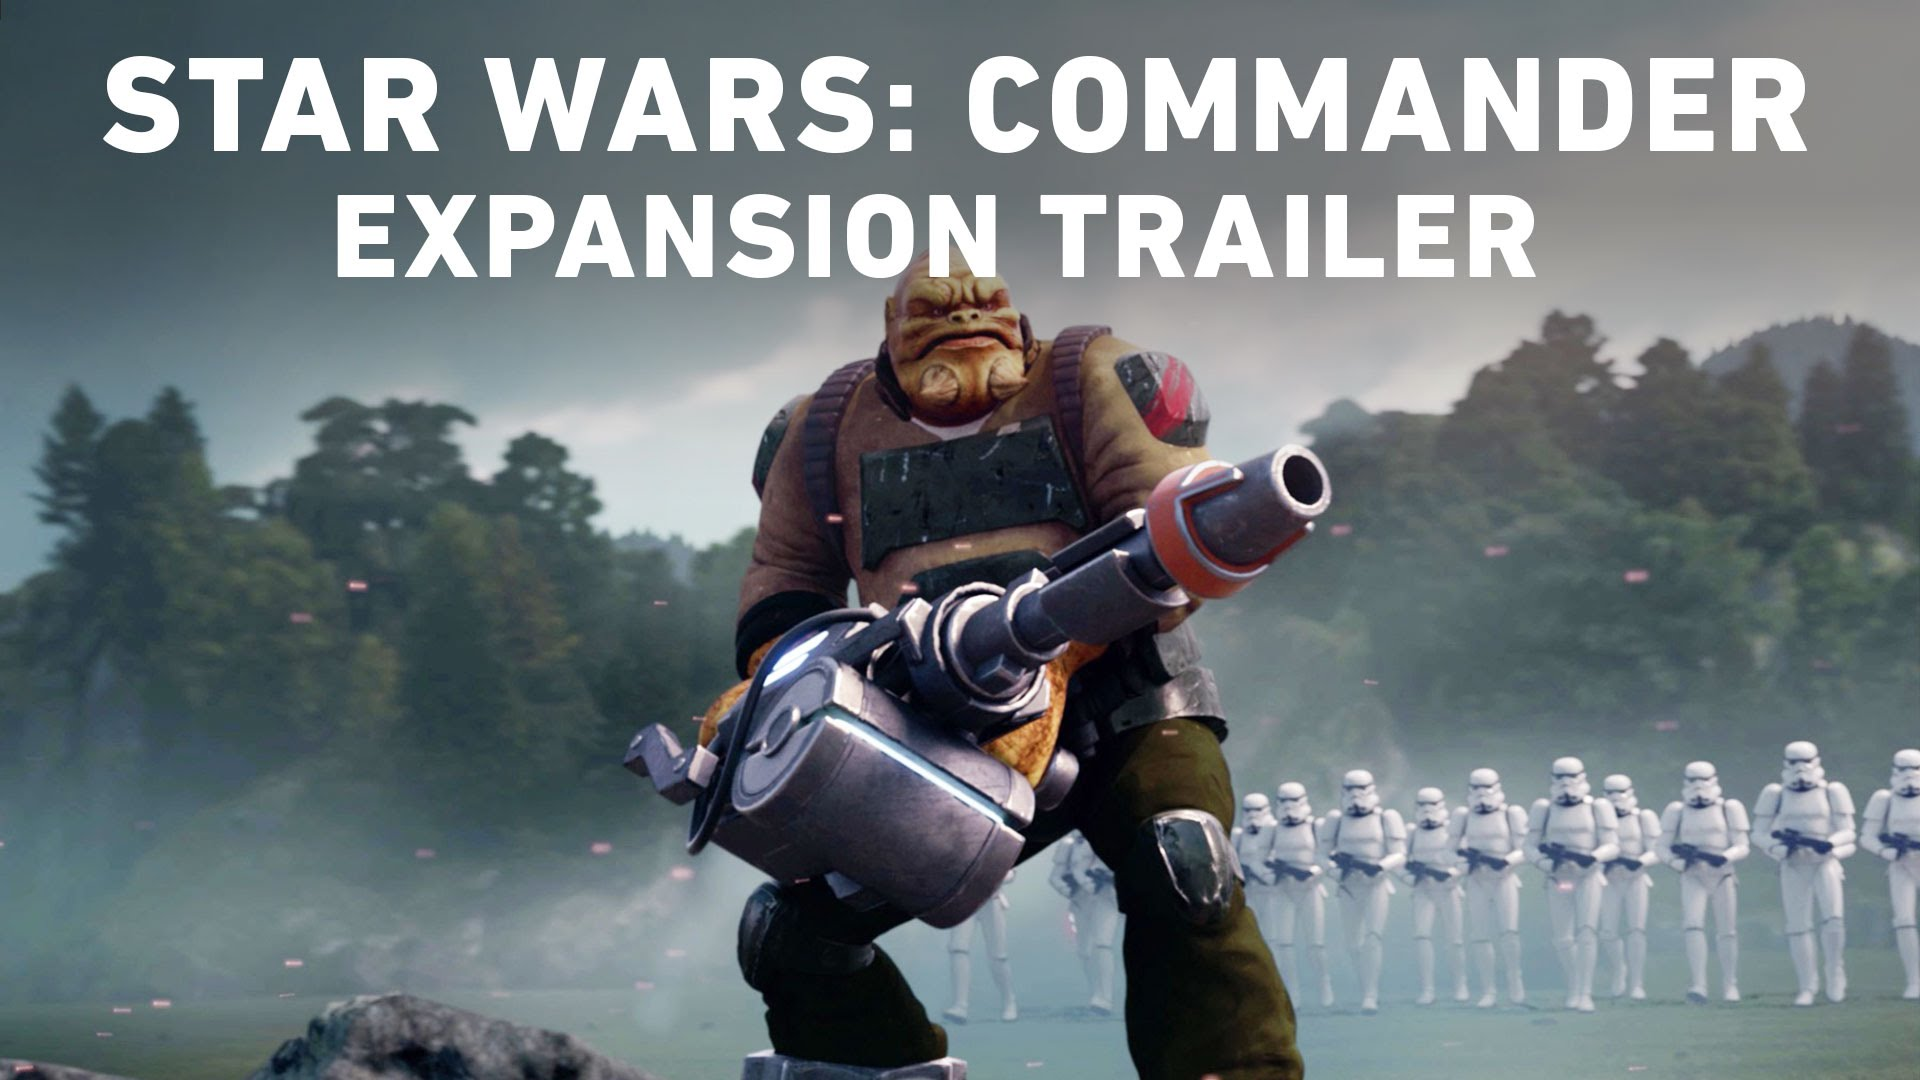 Star Wars: Commander Expansion Trailer